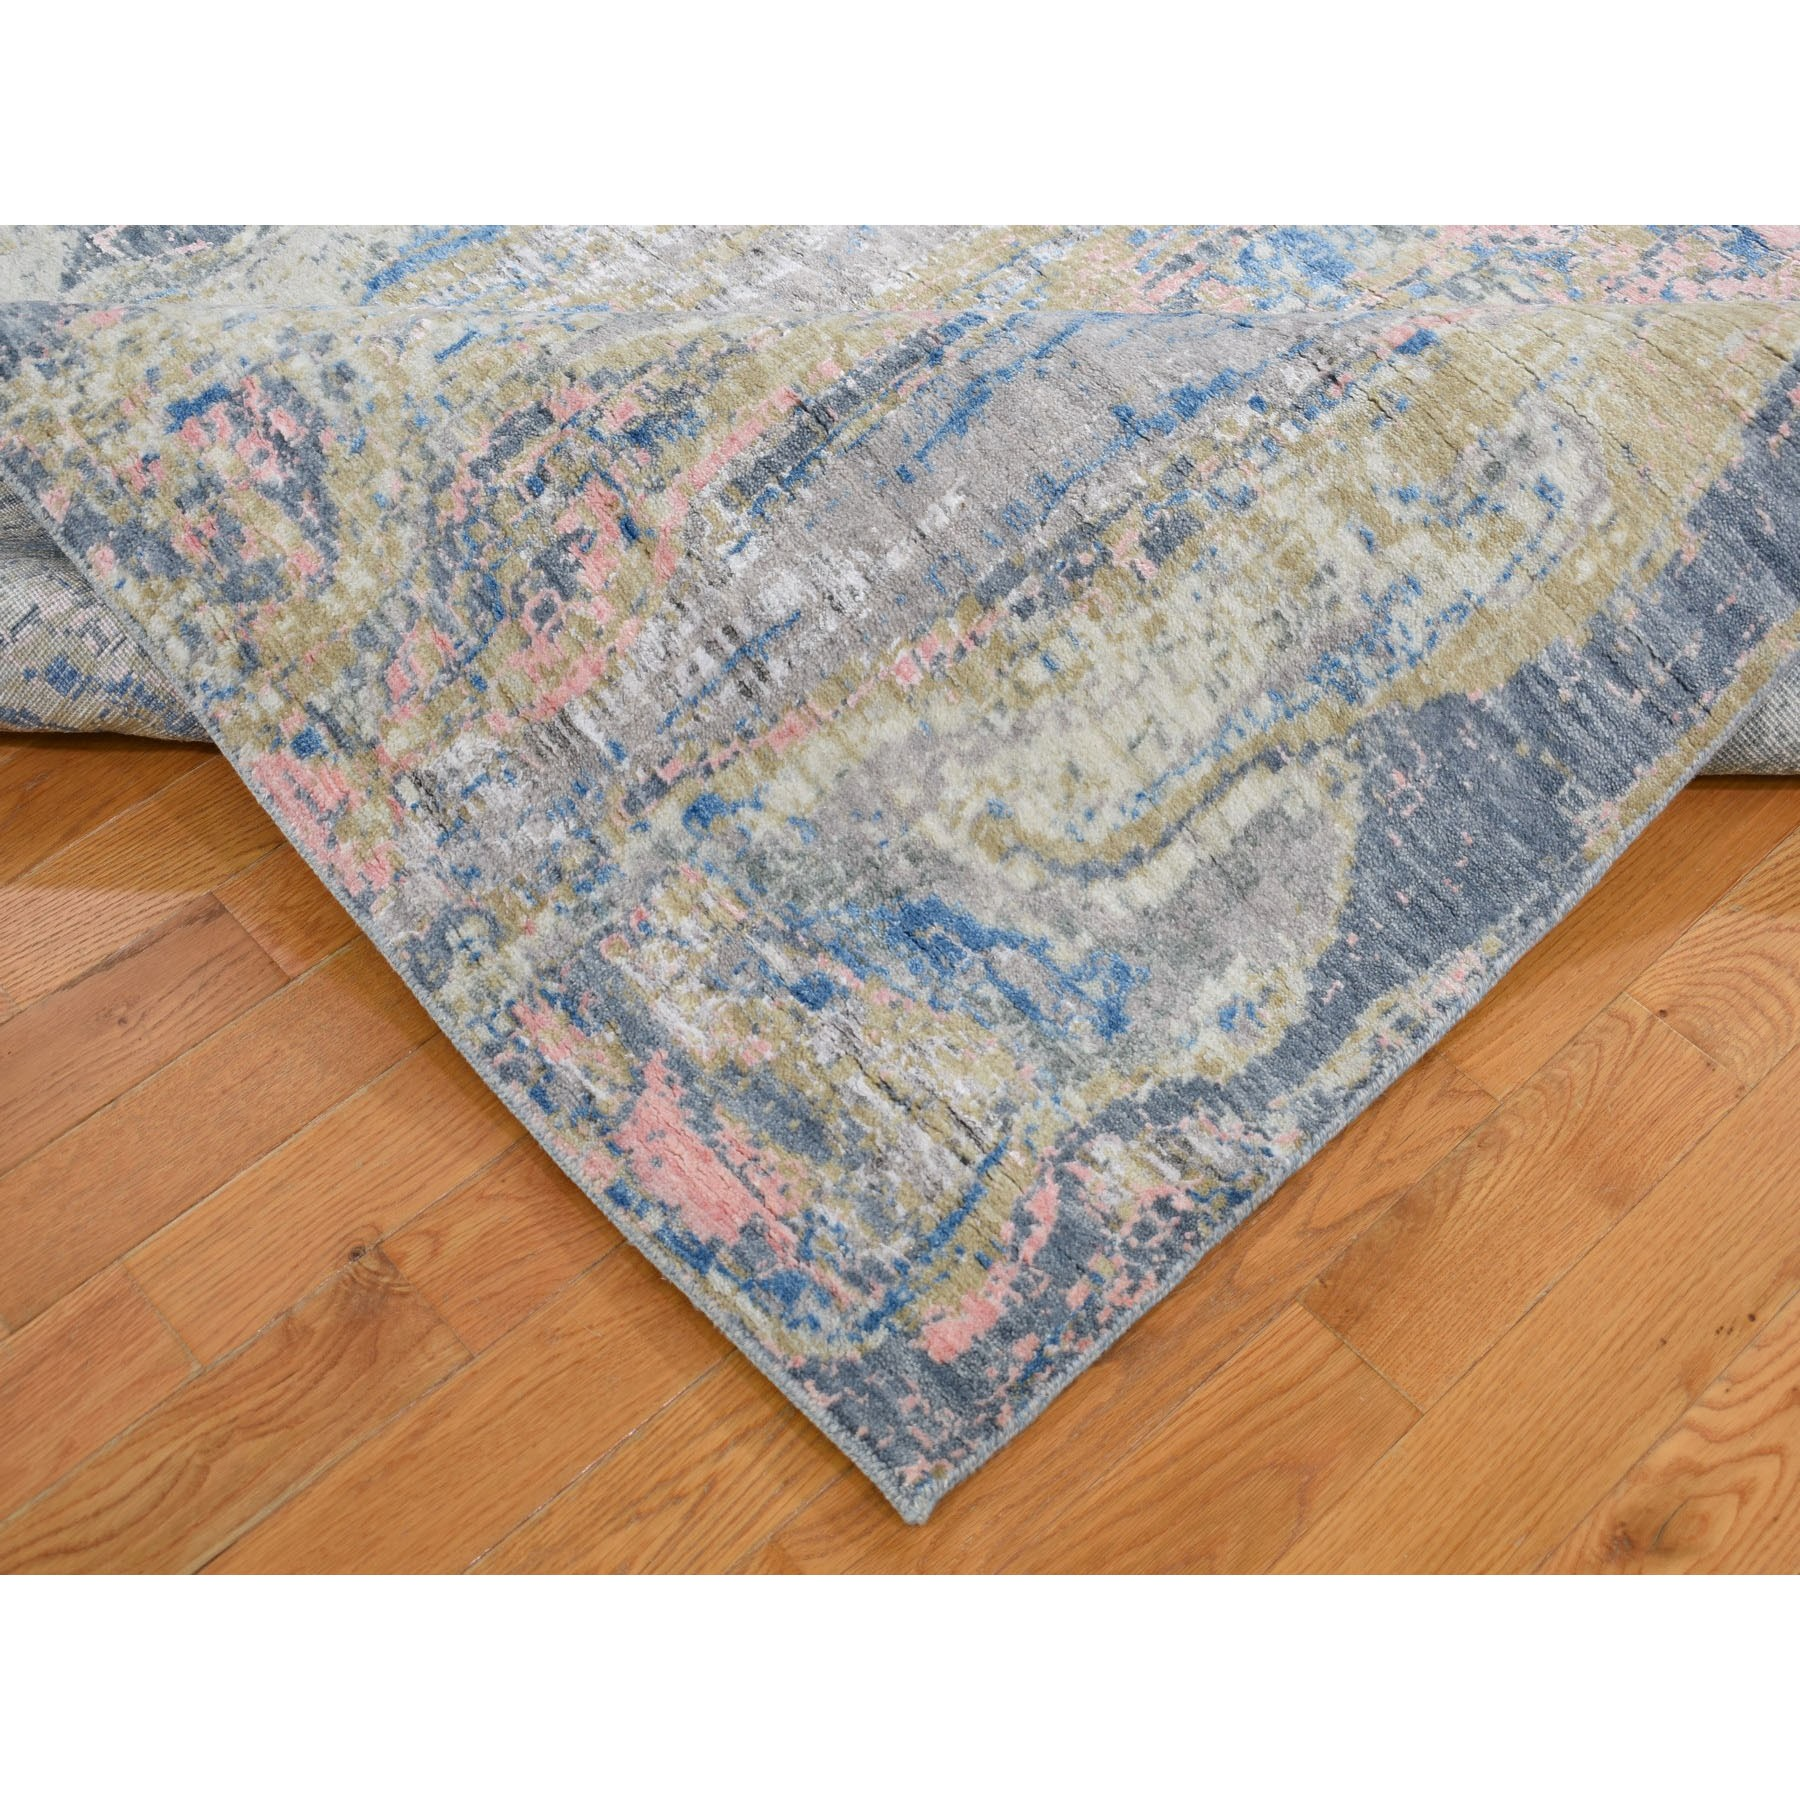 7-10 x10-3  Pastel Color Geological Design Wool And Silk Hand Knotted Oriental Rug